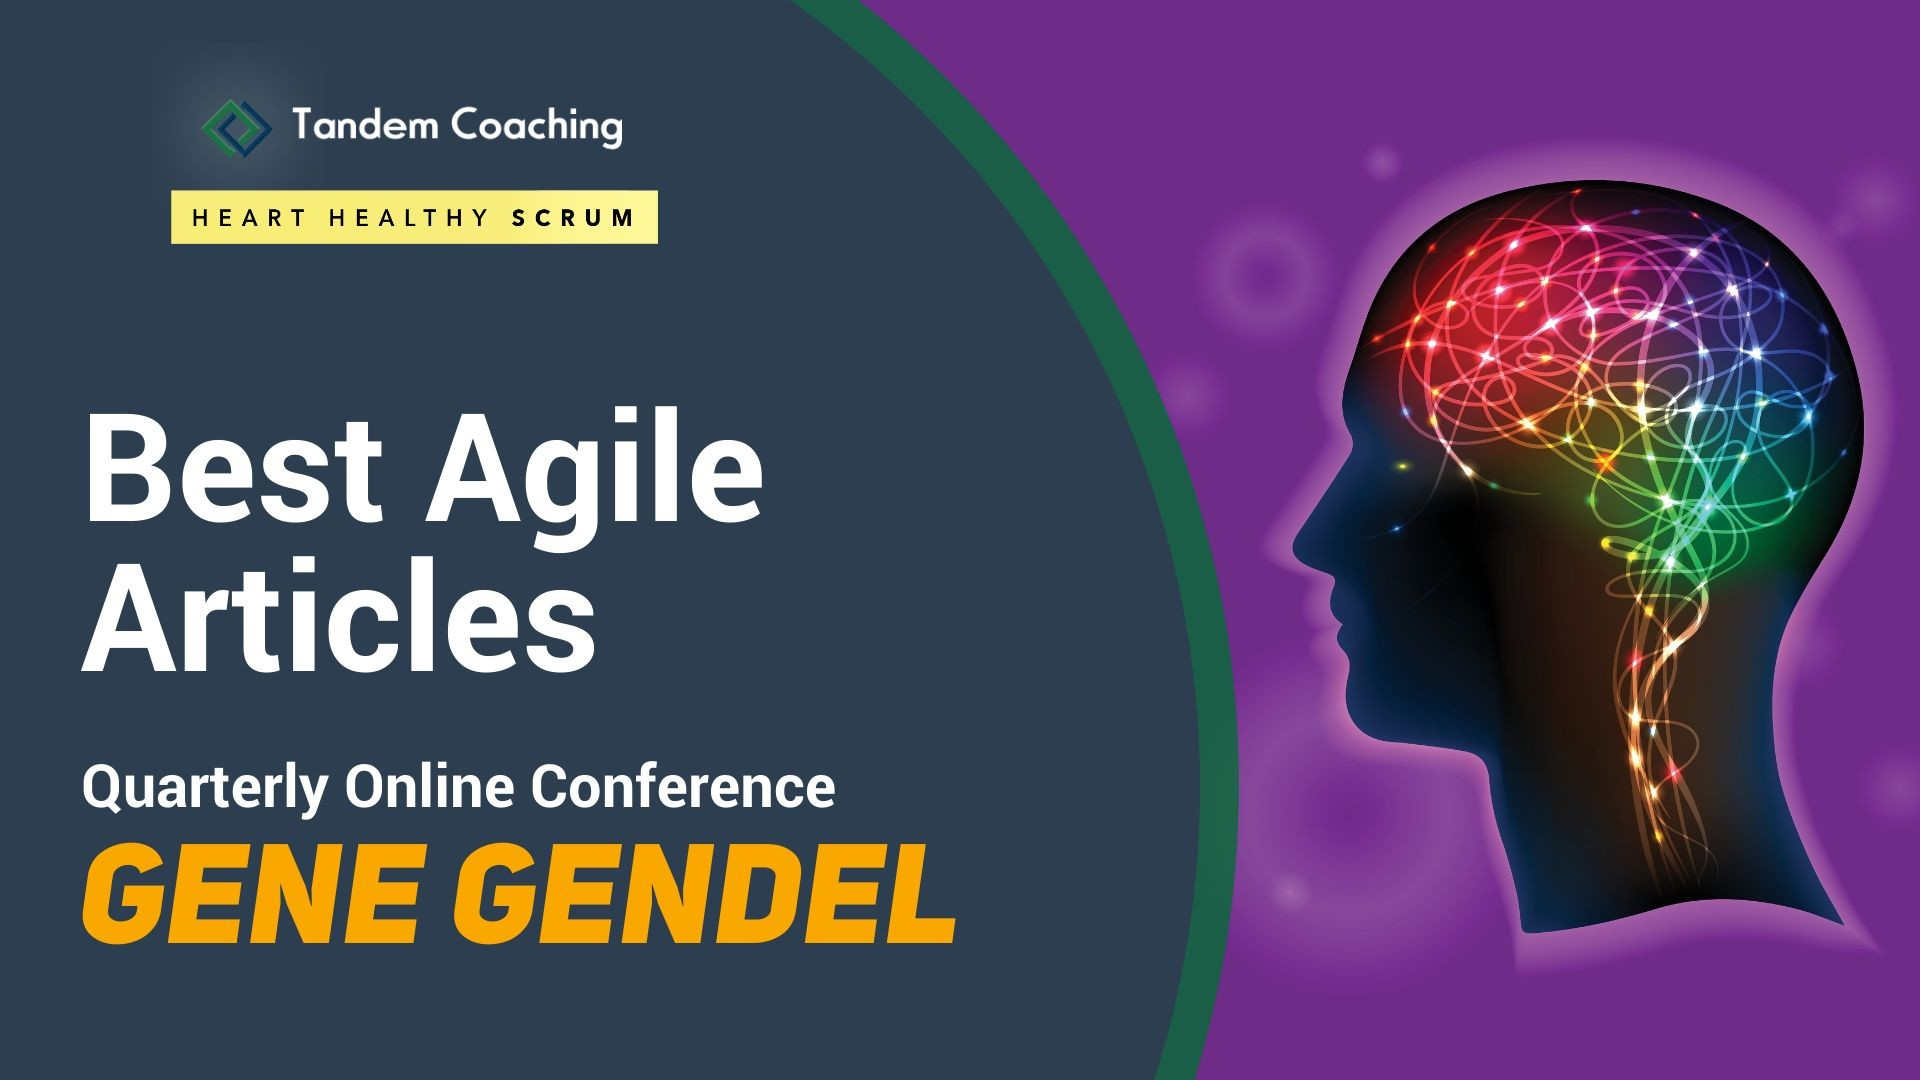 Best Agile Articles Online Conference - Gene Gendel